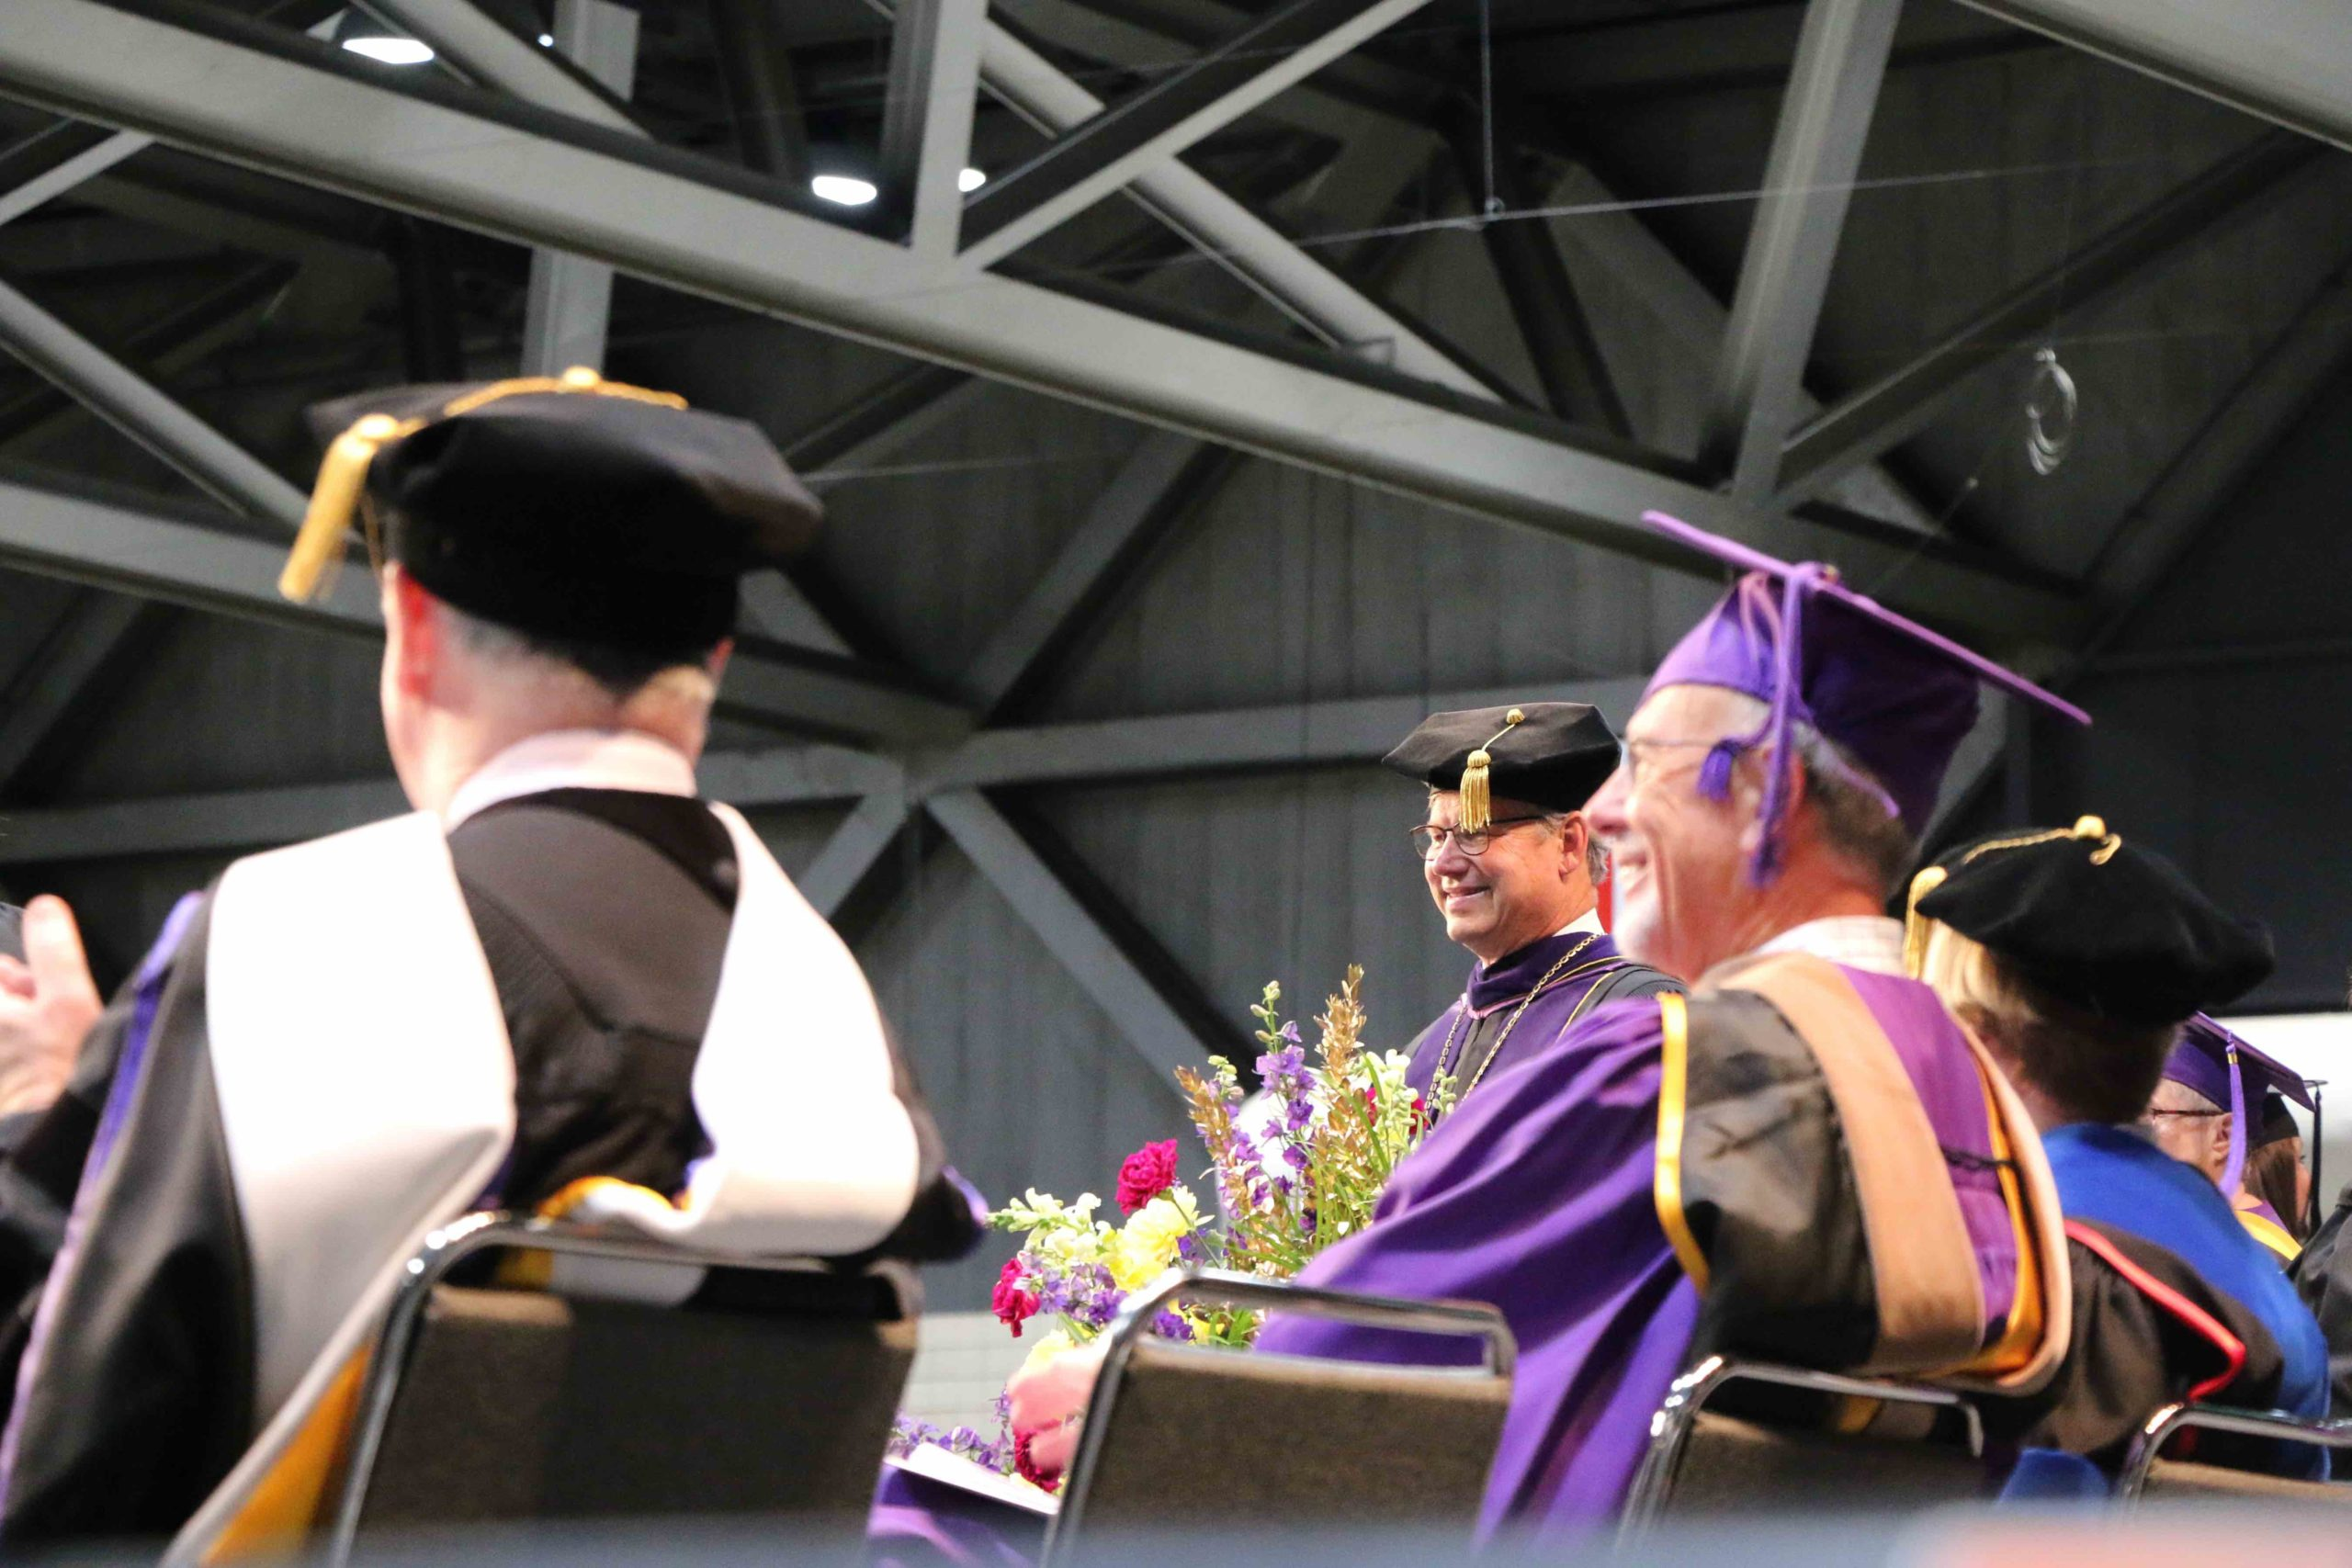 President Ronald Slepitza smiles on the commencement stage